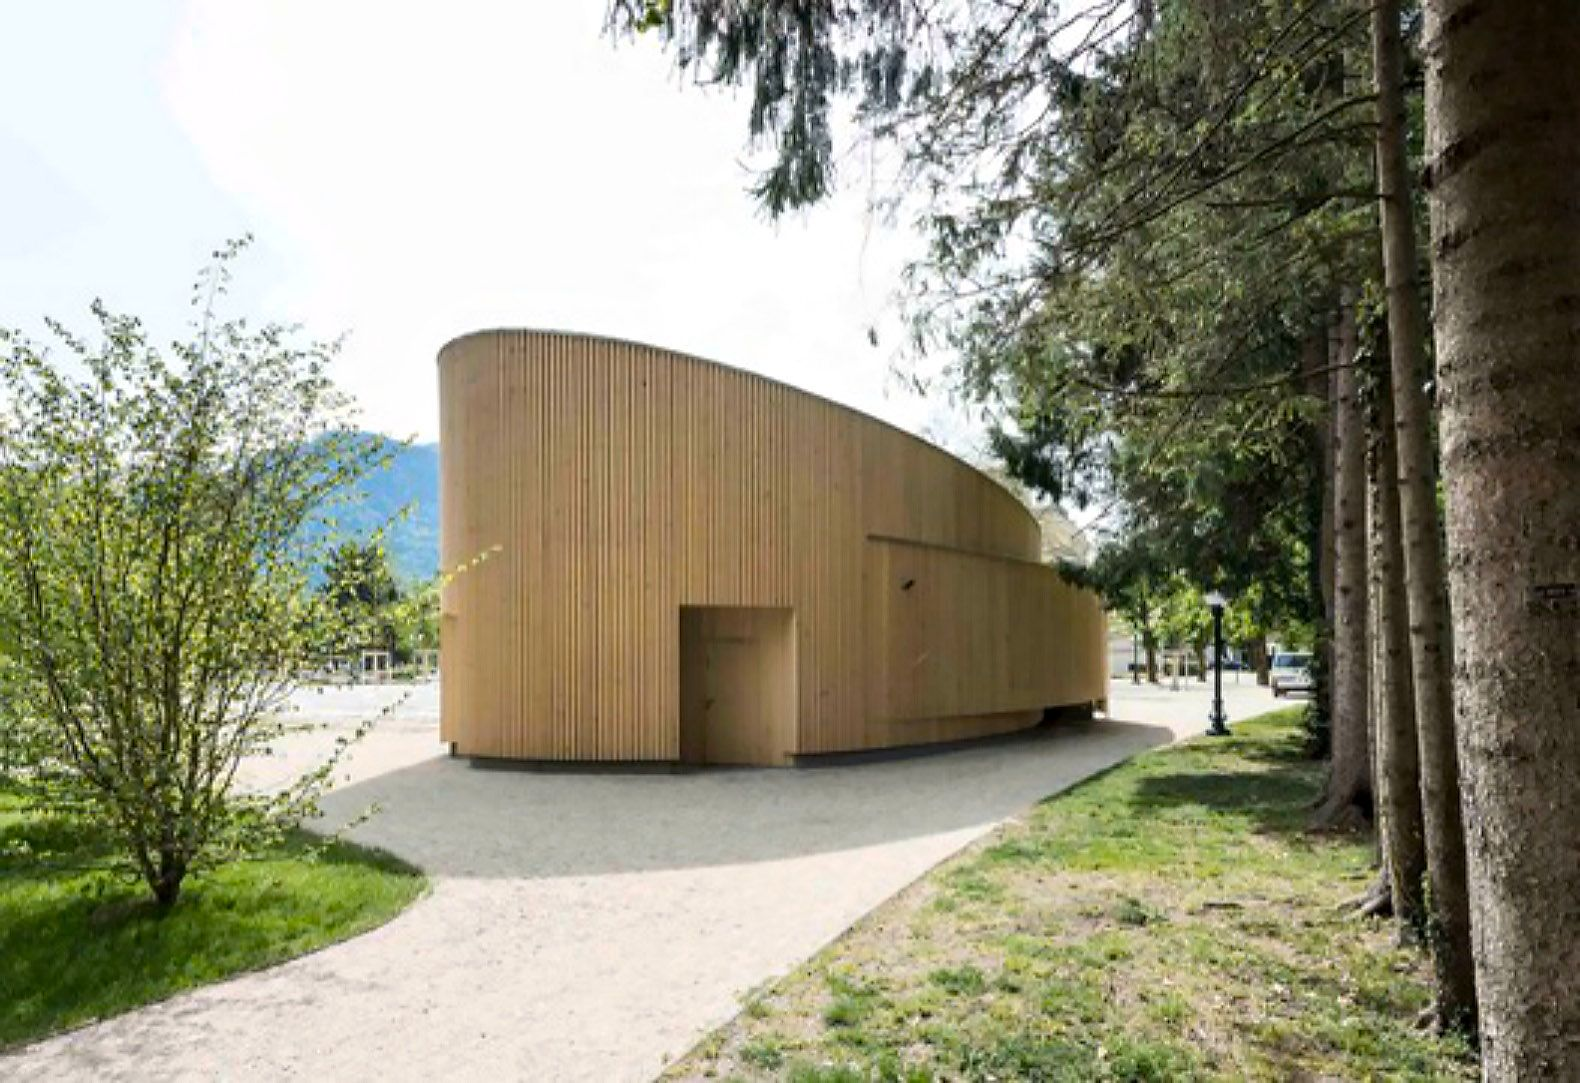 Music Pavilion Two In A Box Architecture Pavilion Architecture Modern Architecture